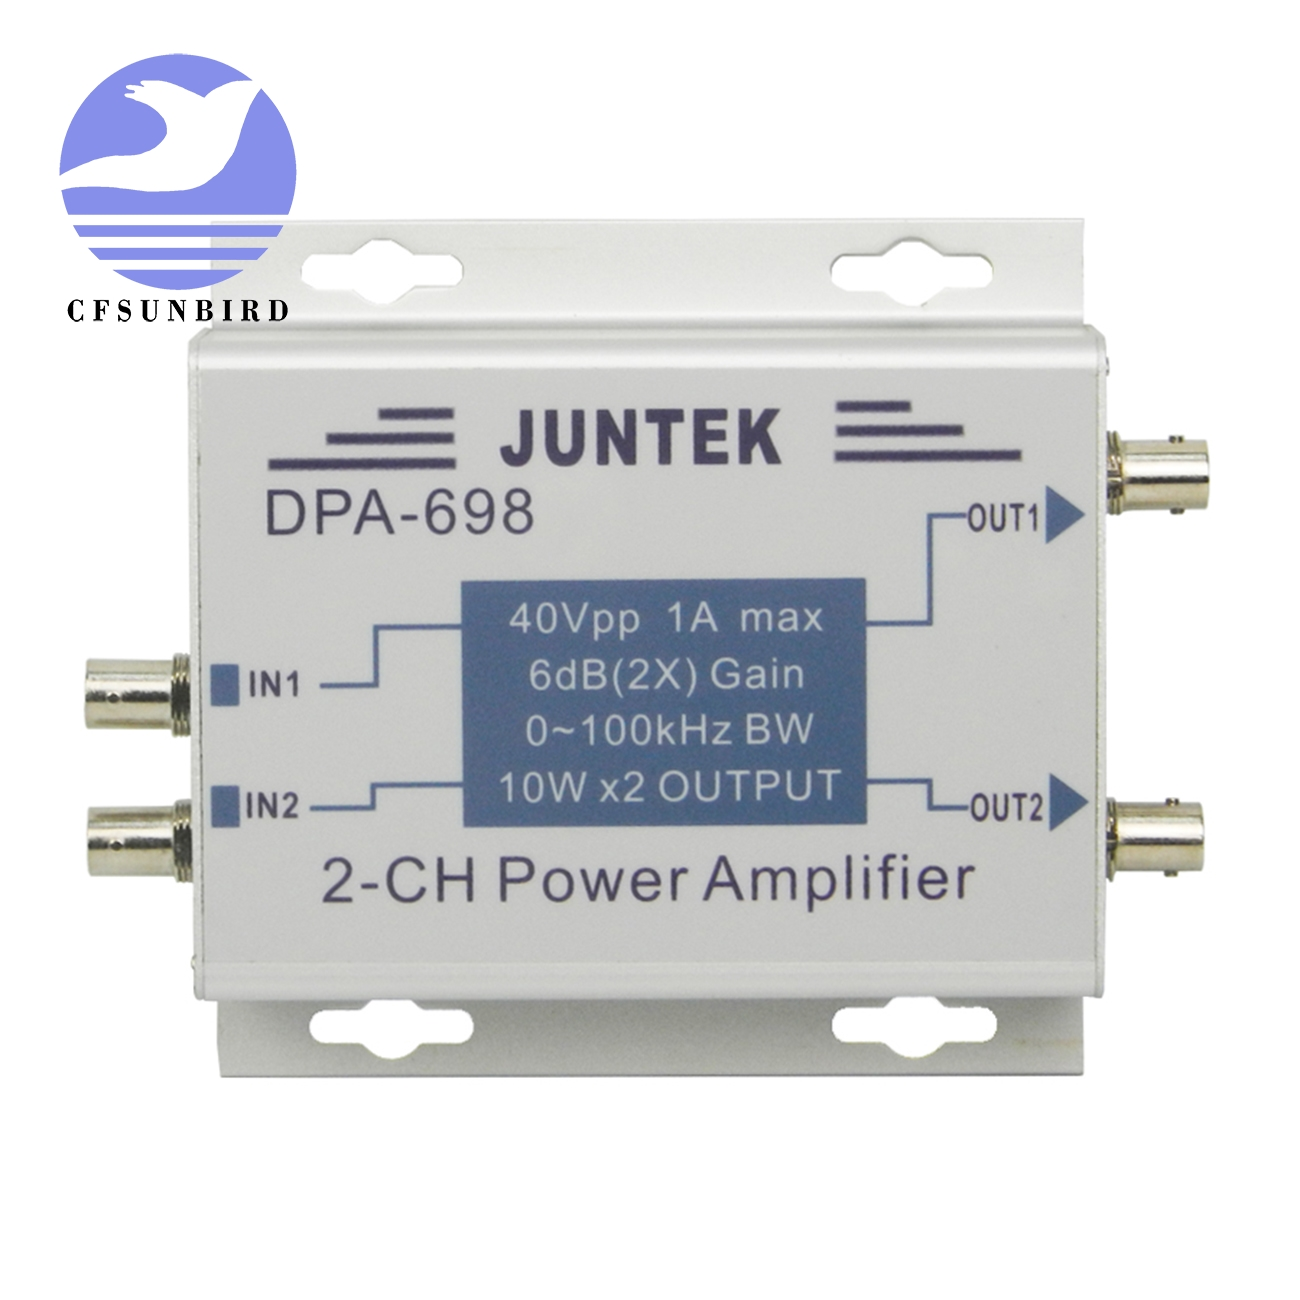 DPA 698 high power dual channel DDS function signal generator power amplifier DC power amplifier 40Vpp